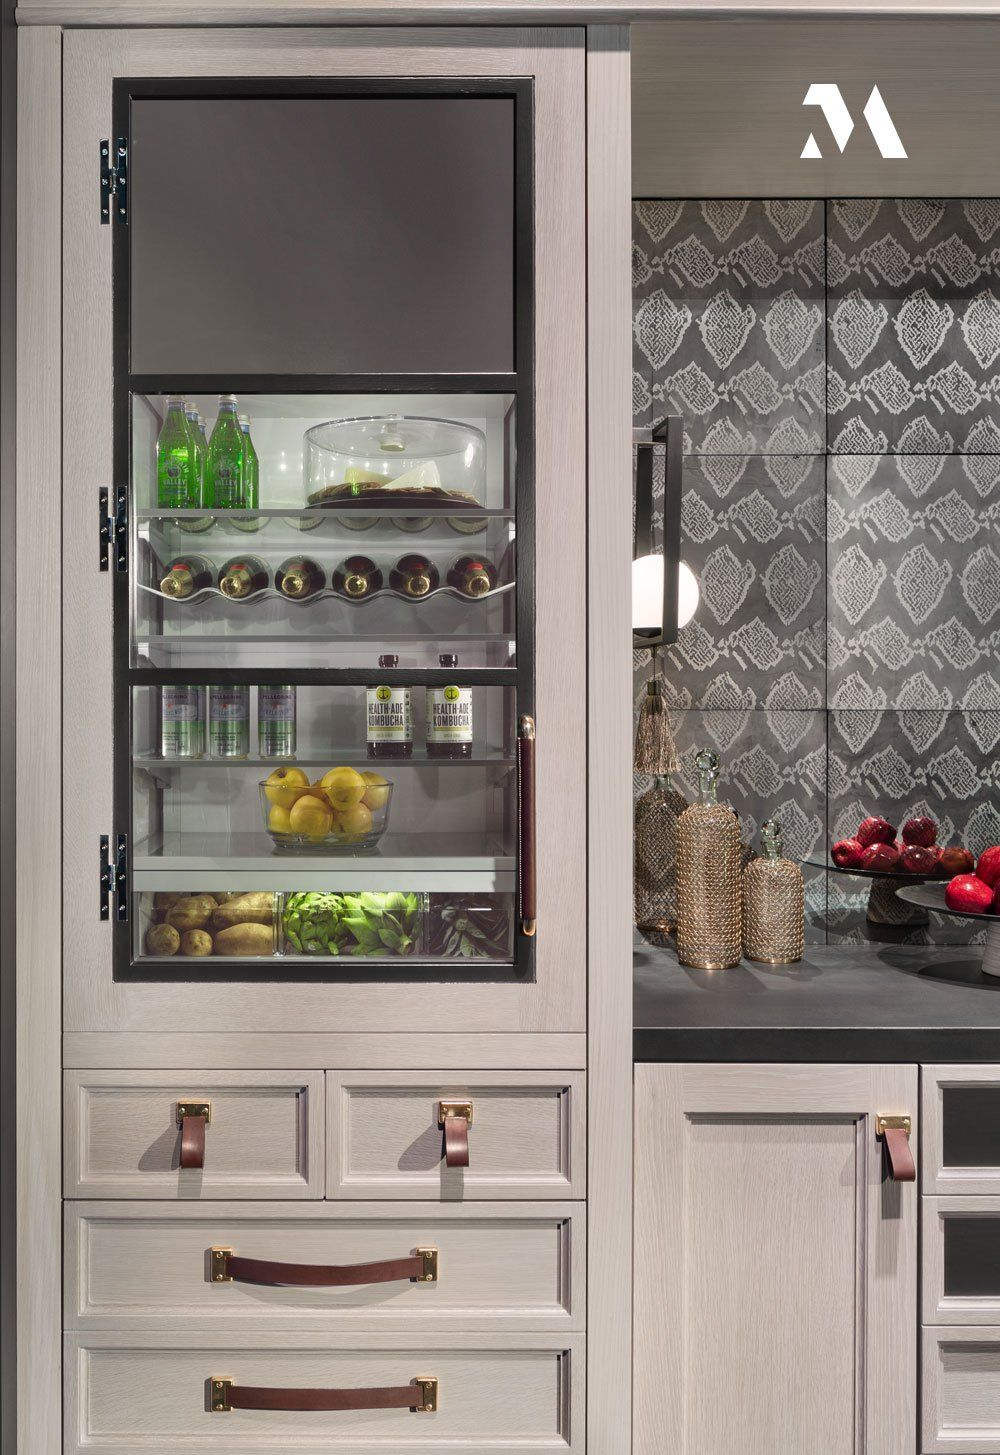 Kbis 2020 Was Truly A Celebration For Monogram With The Launch Of Two New Luxury Appliance Collection In 2020 Professional Kitchen Appliances Luxury Appliances Kitchen